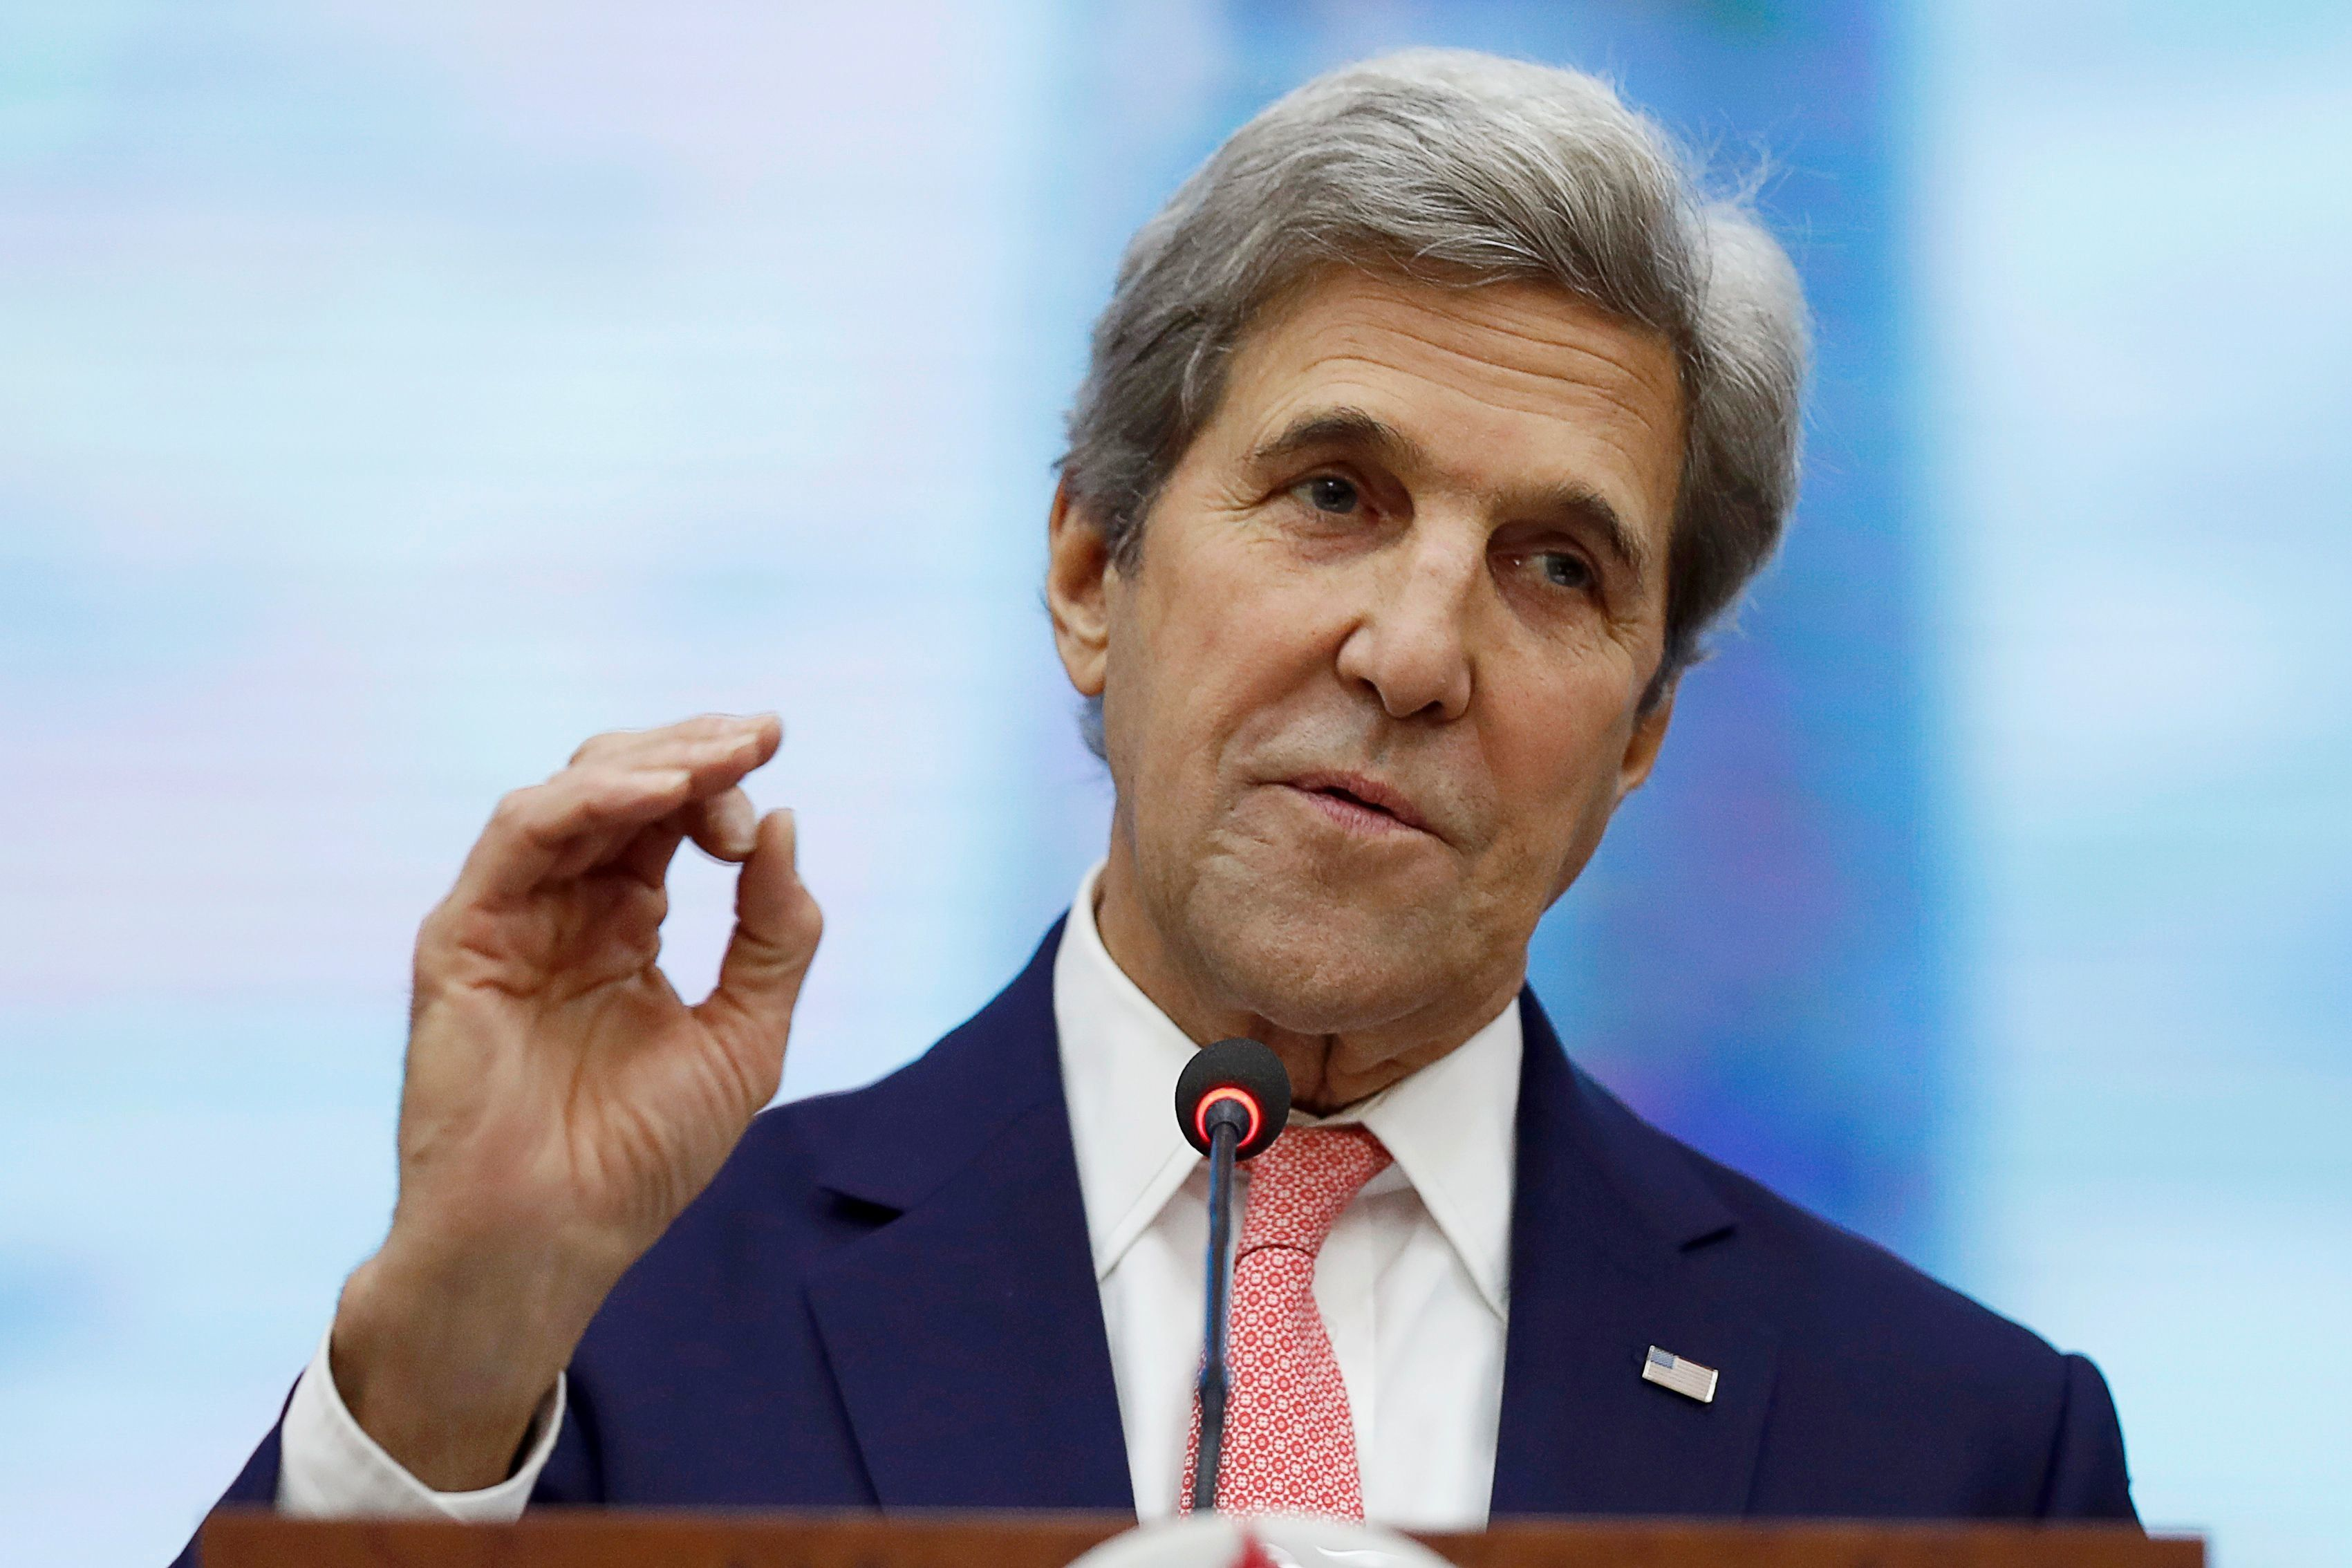 US Secretary of State John Kerry speaks at the Ho Chi Minh University of Technology and Education in Ho Chi Minh City on January 13, 2017.  US Secretary of State John Kerry began his farewell tour in Vietnam on January 13, giving a final push for Washington's so-called Asia pivot before President-elect Donald Trump takes office next week. / AFP / POOL / Alex Brandon        (Photo credit should read ALEX BRANDON/AFP/Getty Images)